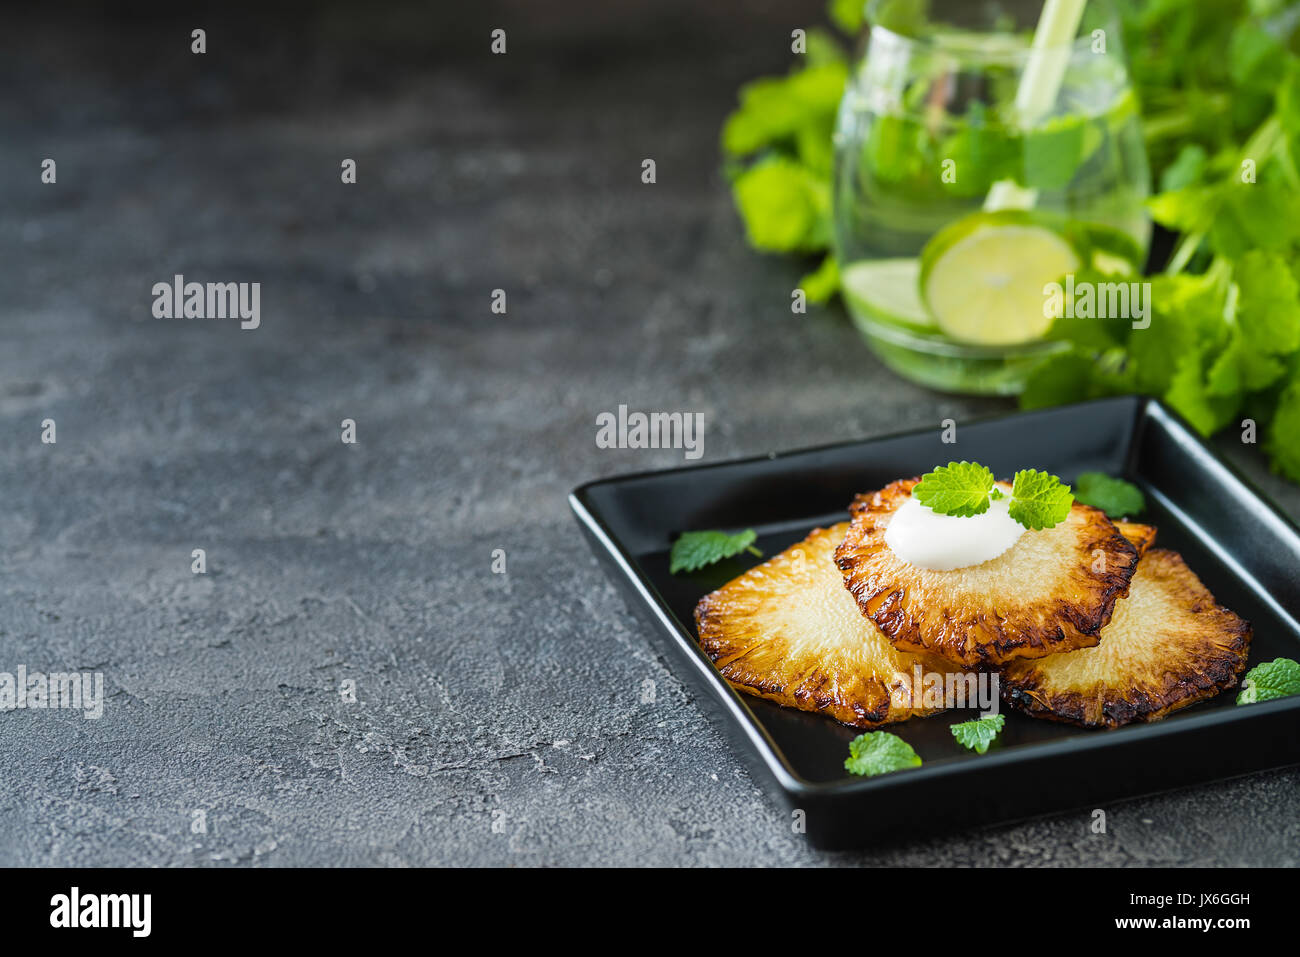 Fried pineapple slices with creme fraiche, mint on dark background. Copy space - Stock Image